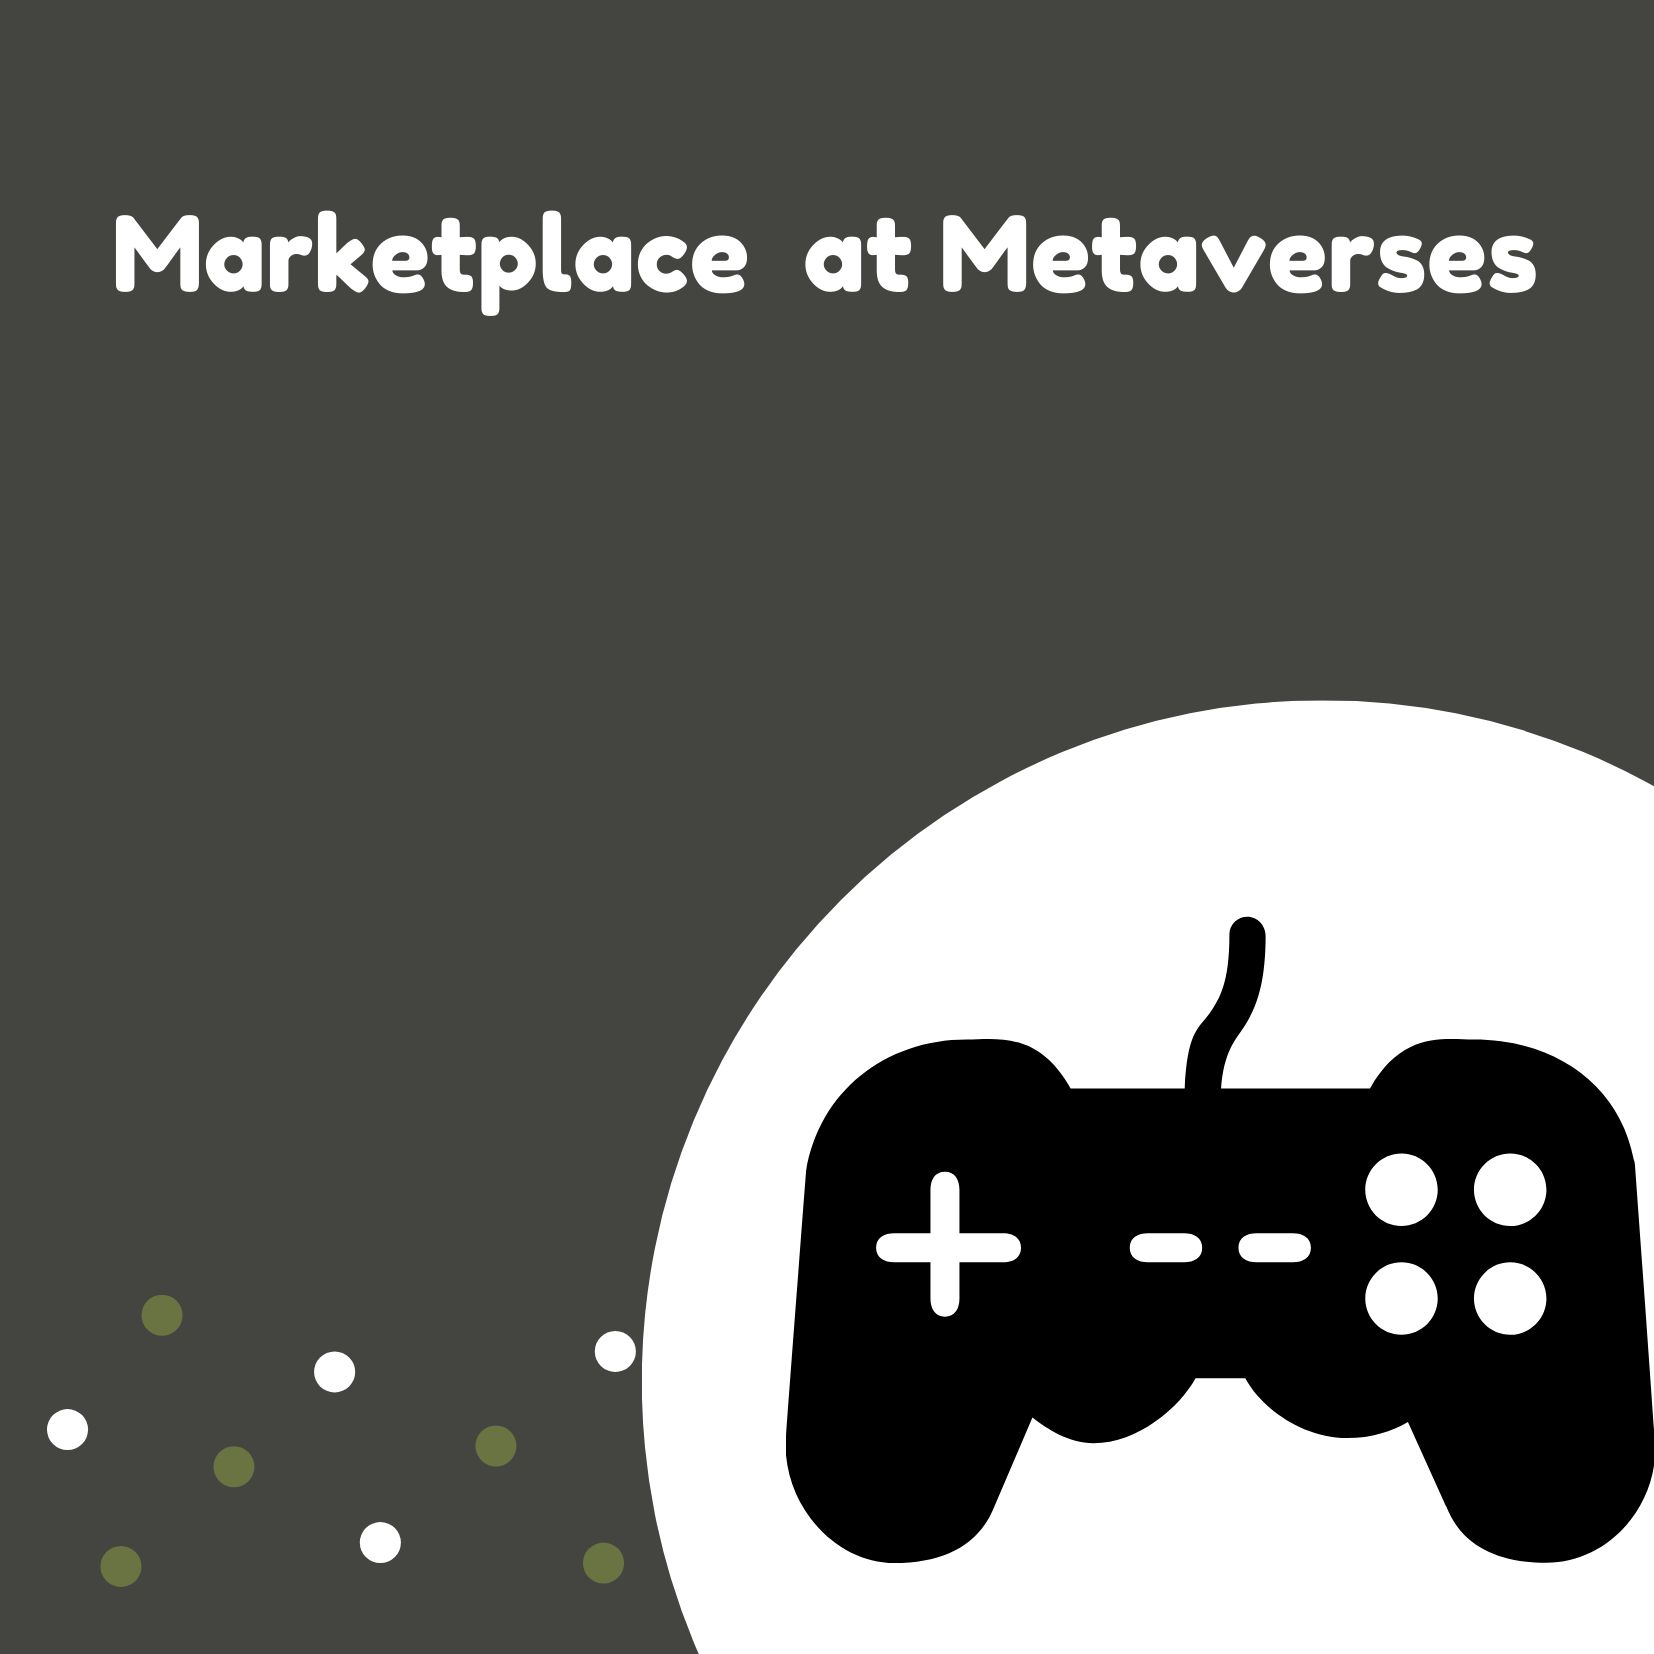 /options-in-the-metaverse-enjin-the-sandbox-and-other-marketplaces-m267333b feature image